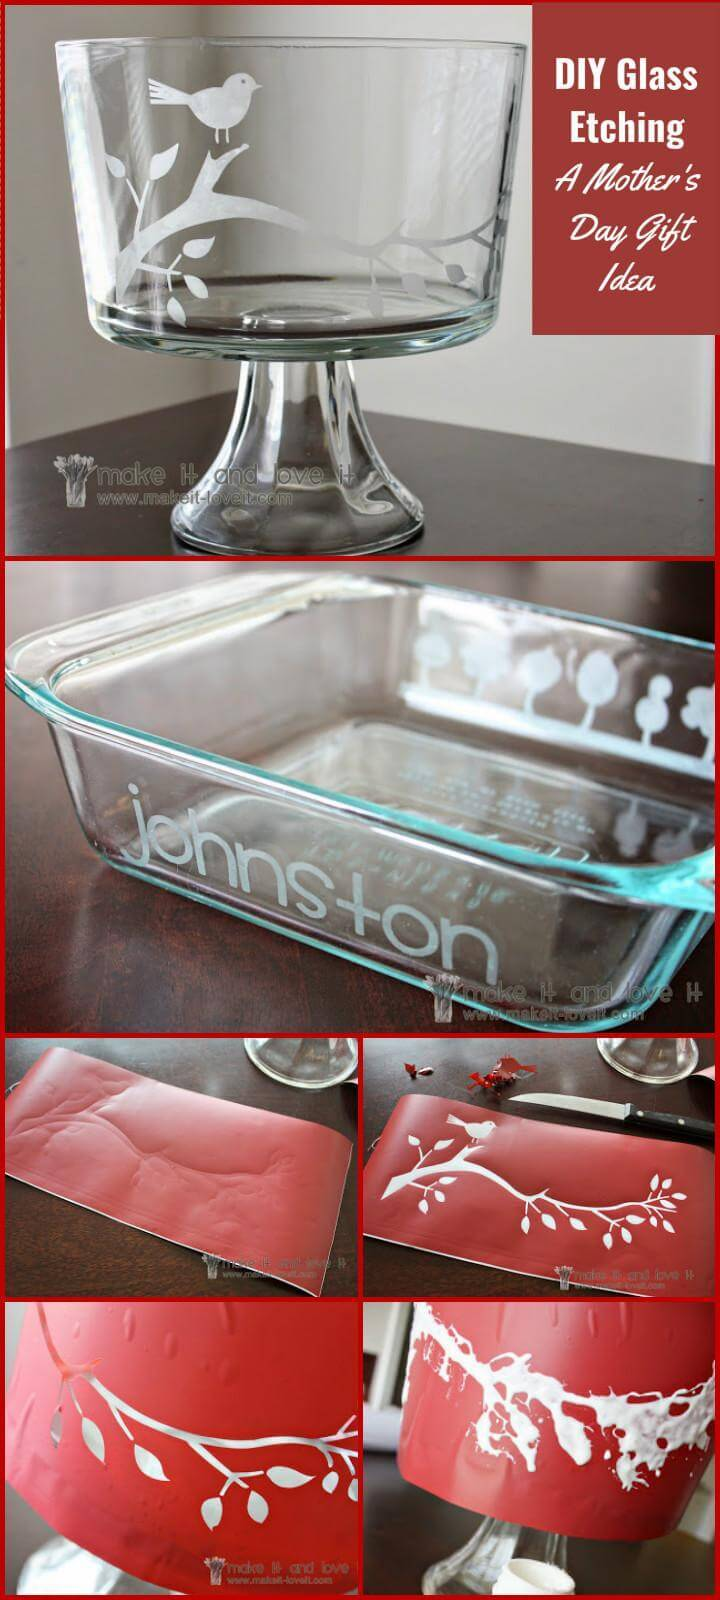 DIY glass etching Mother's Day gift project